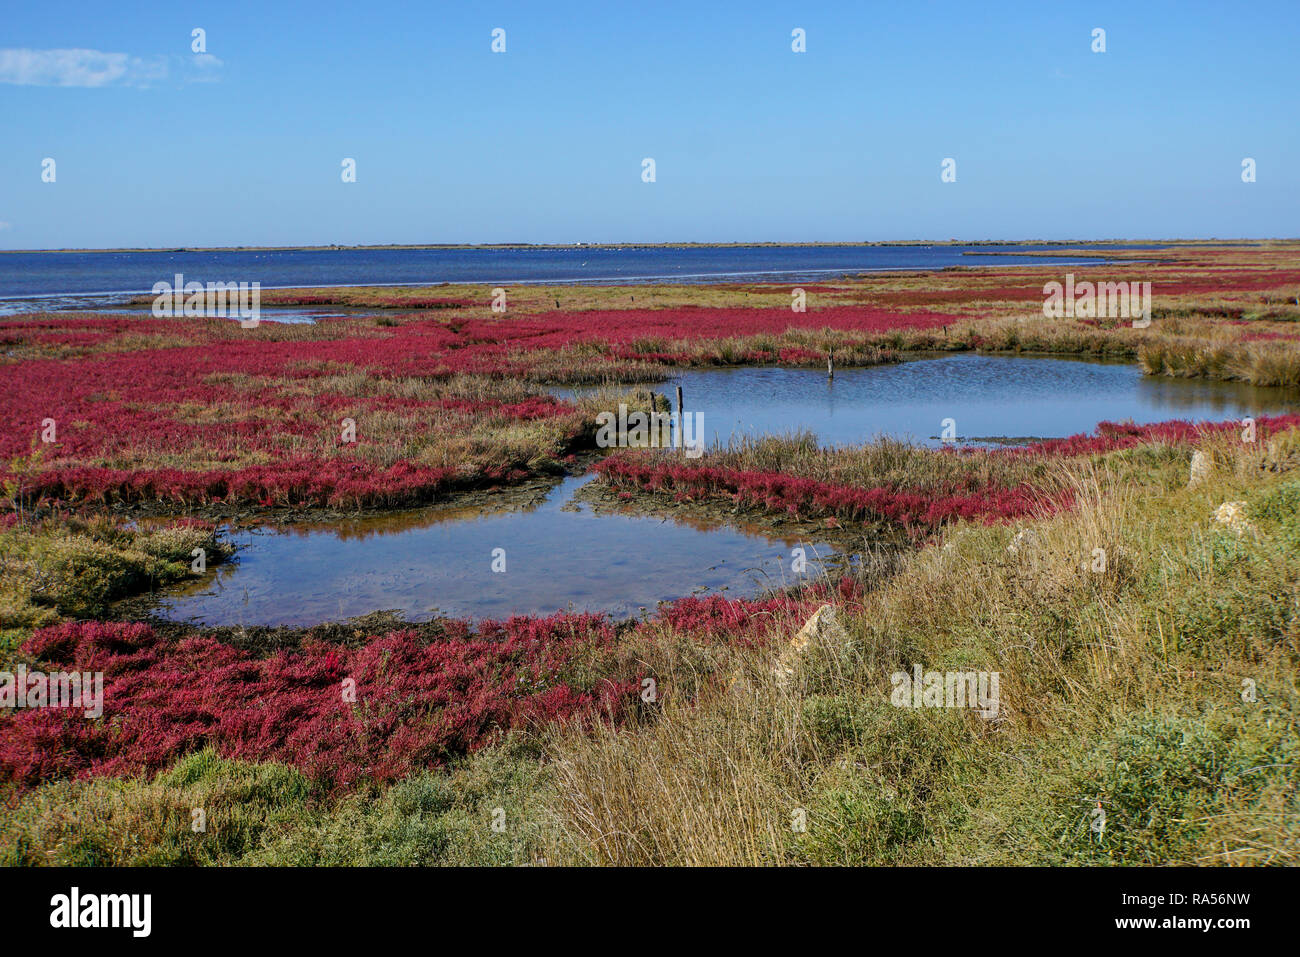 Field with red salicornia Salt-tolerant plant. Saltwort plant (Salicornia sp.) growing in a soil with a high salt content. This plant is growing in th Stock Photo